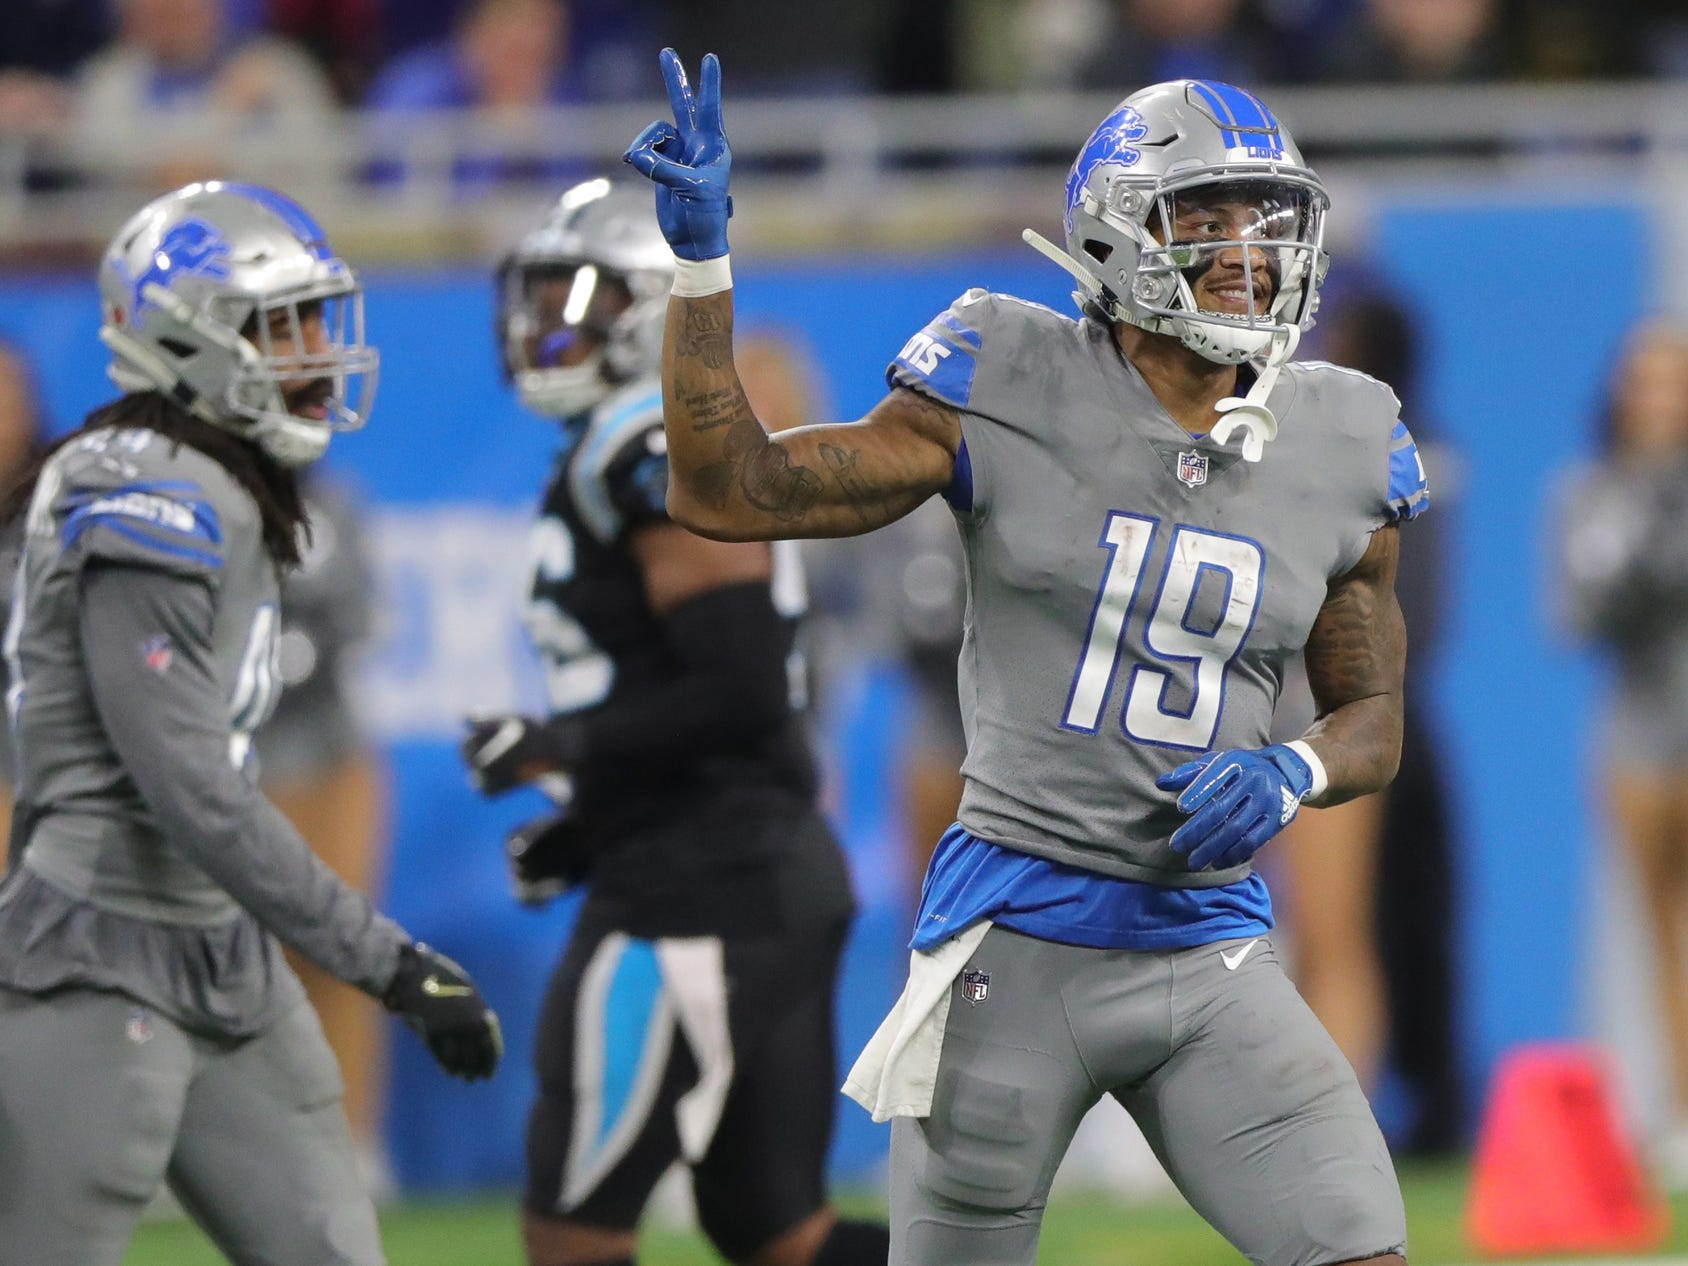 Mitch Albom: Detroit Lions' season lives on ... until Thanksgiving?